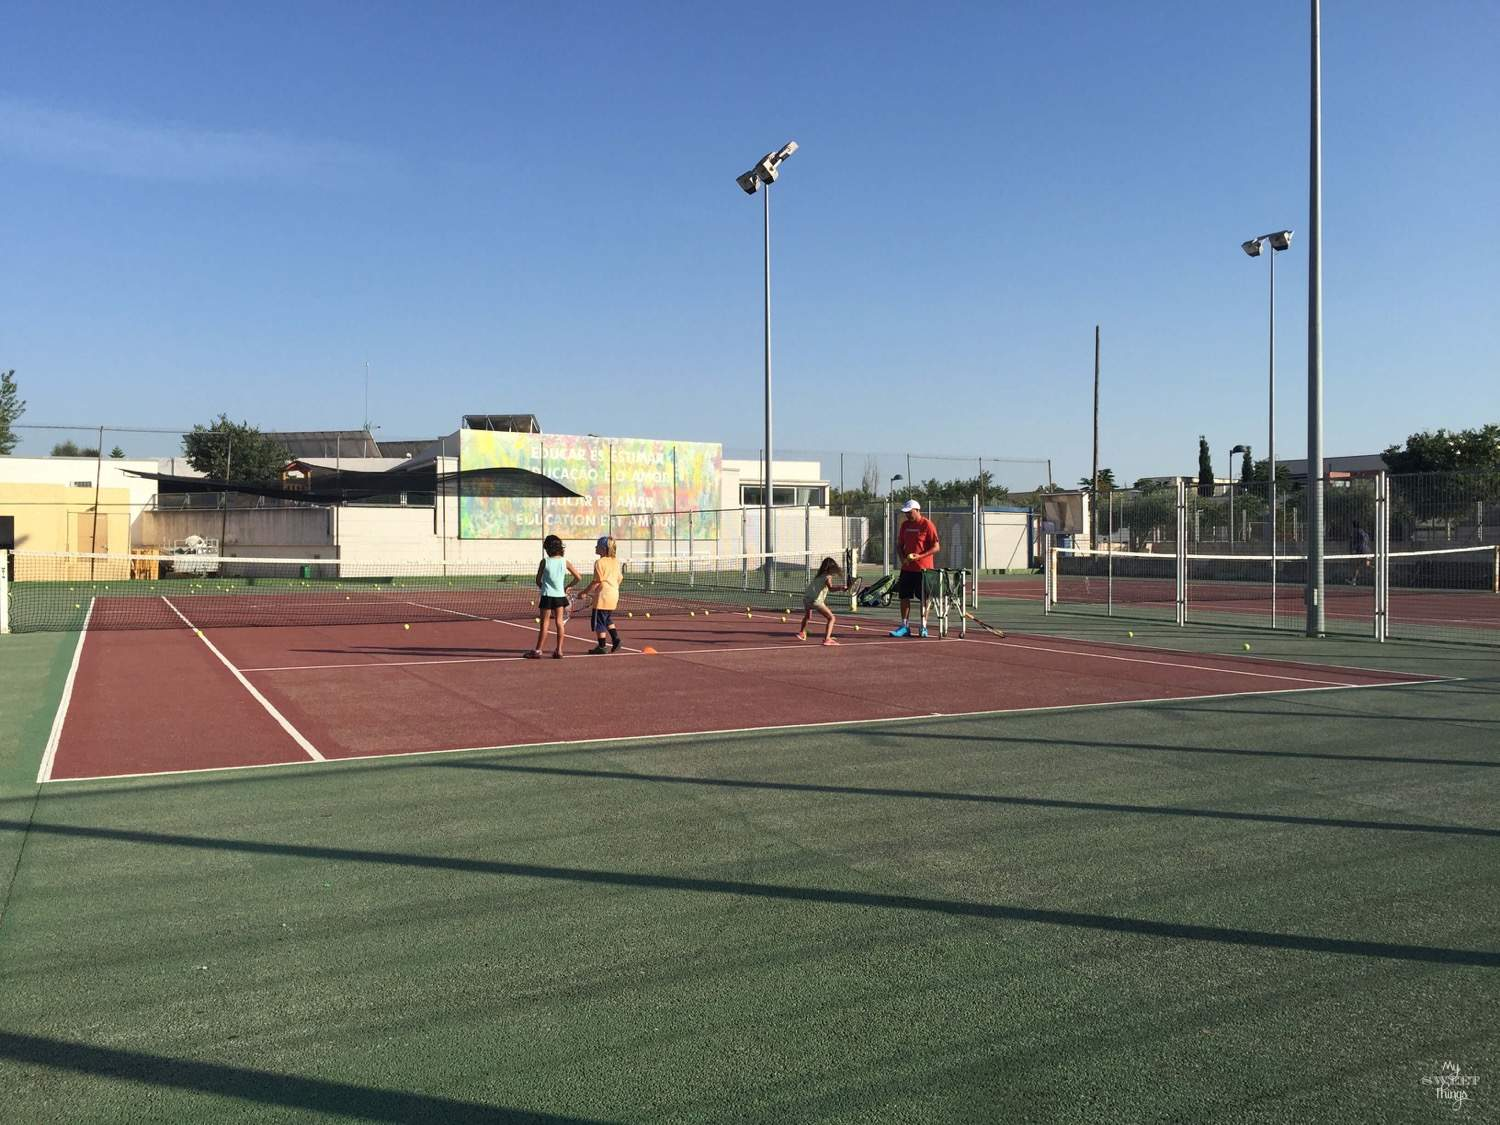 What to do in summer in Mallorca - Playing tennis